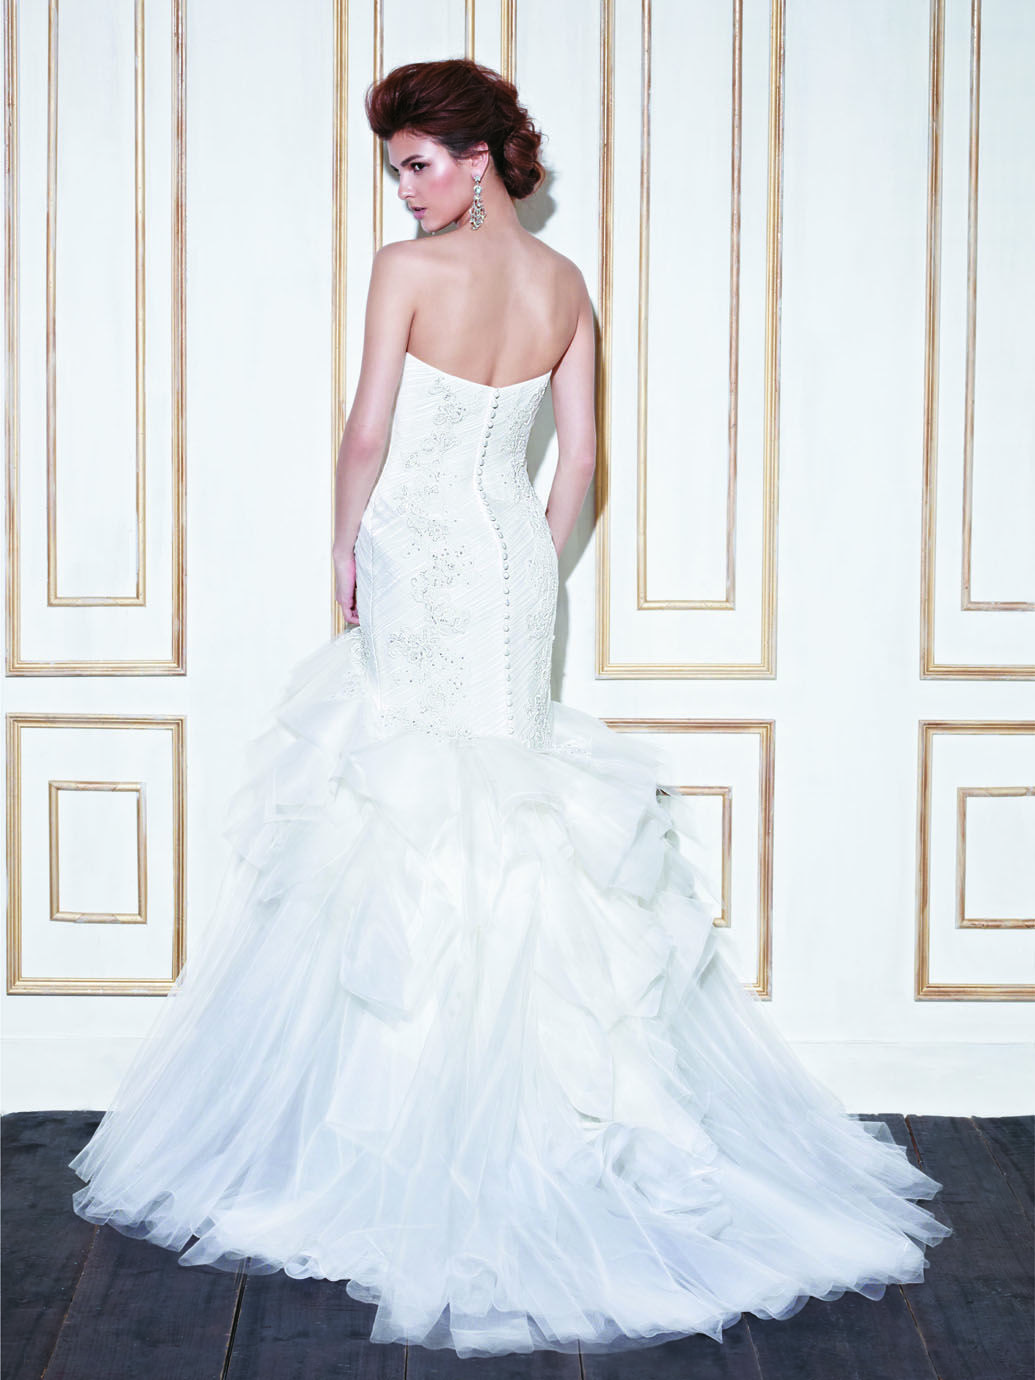 Guam blue collection enzoani available colours ivory white